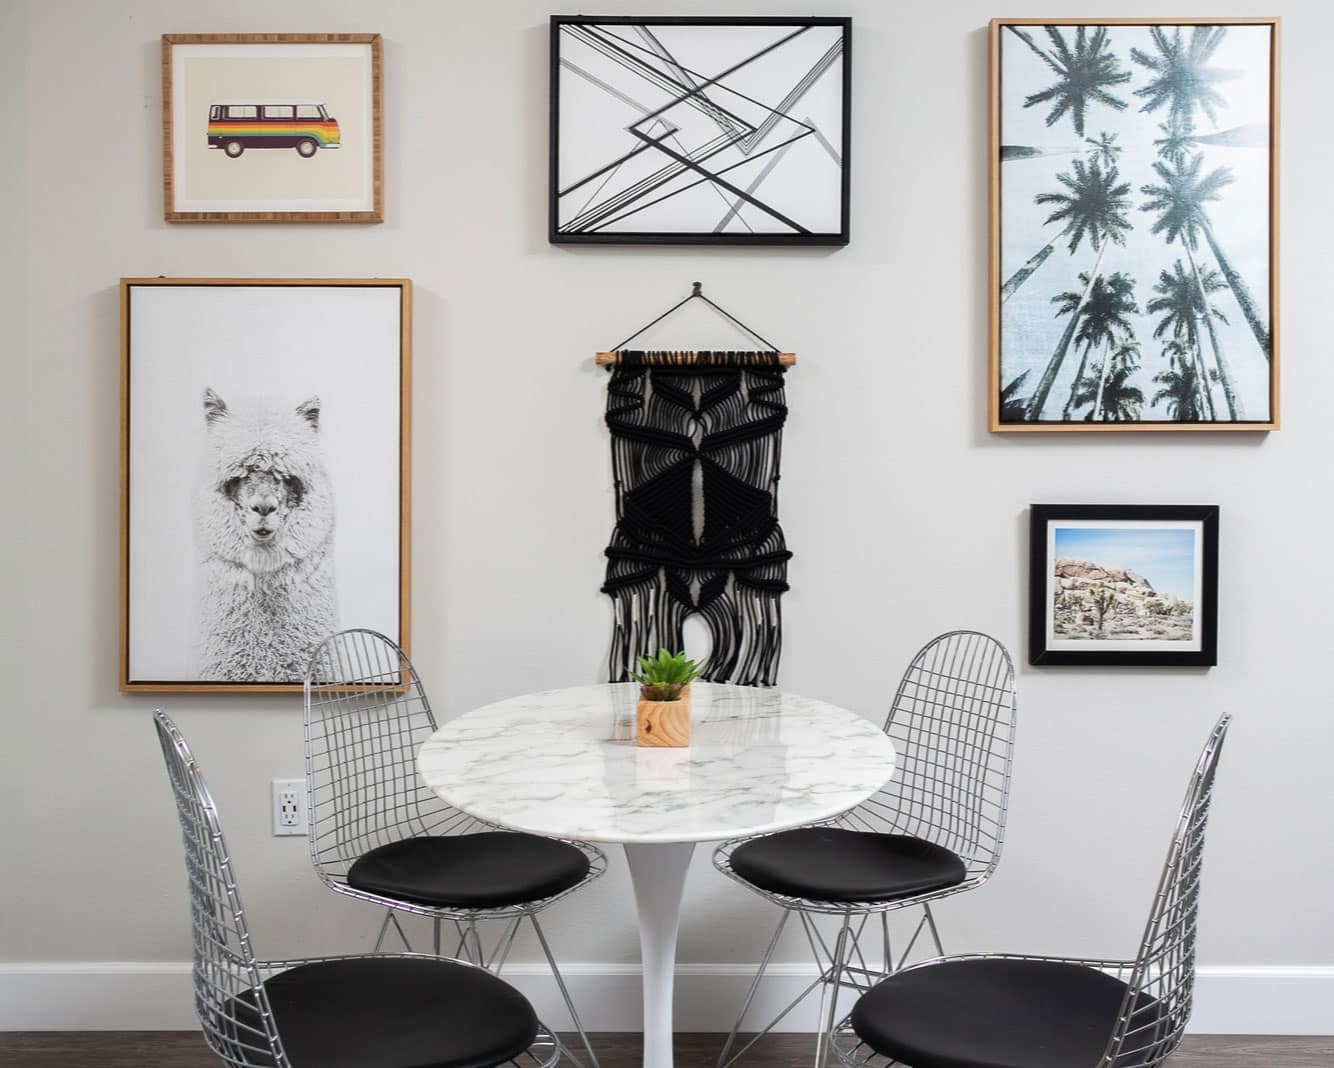 Dining space with marble round table, four metal chairs, and paintings on the wall